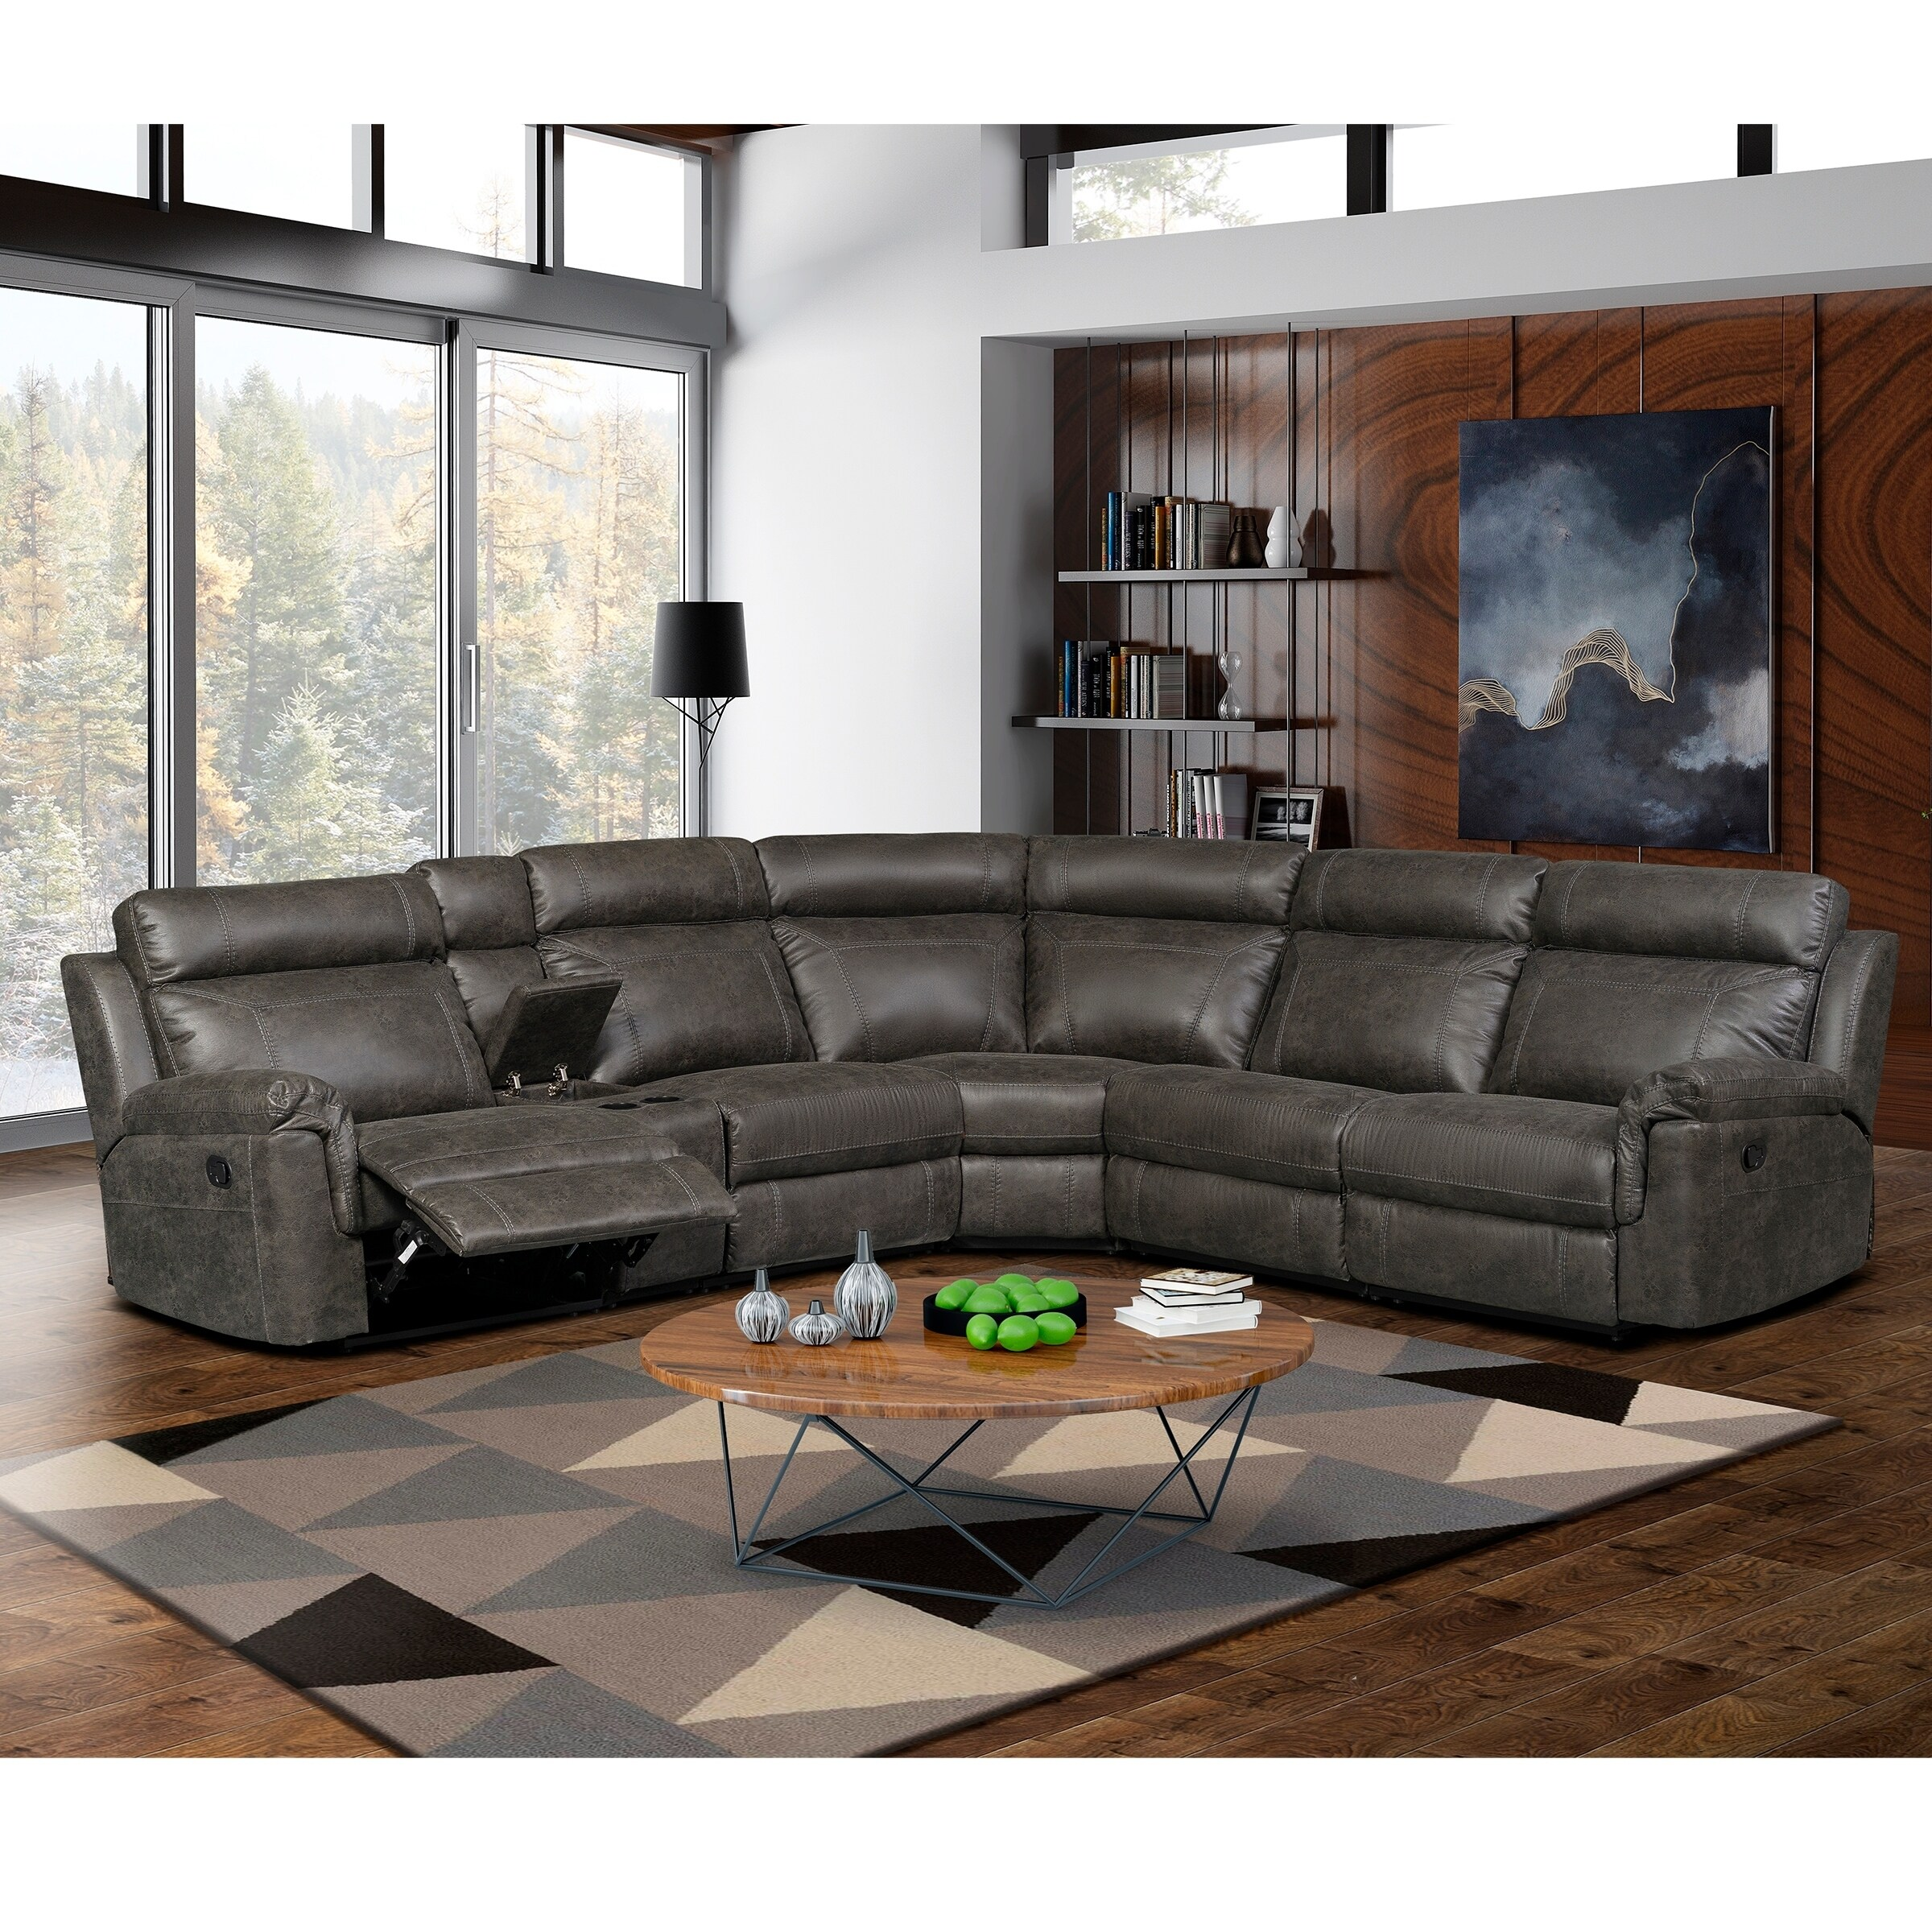 Sofa L 2 X 2 Buy Sectional Sofas Online At Overstock Our Best Living Room